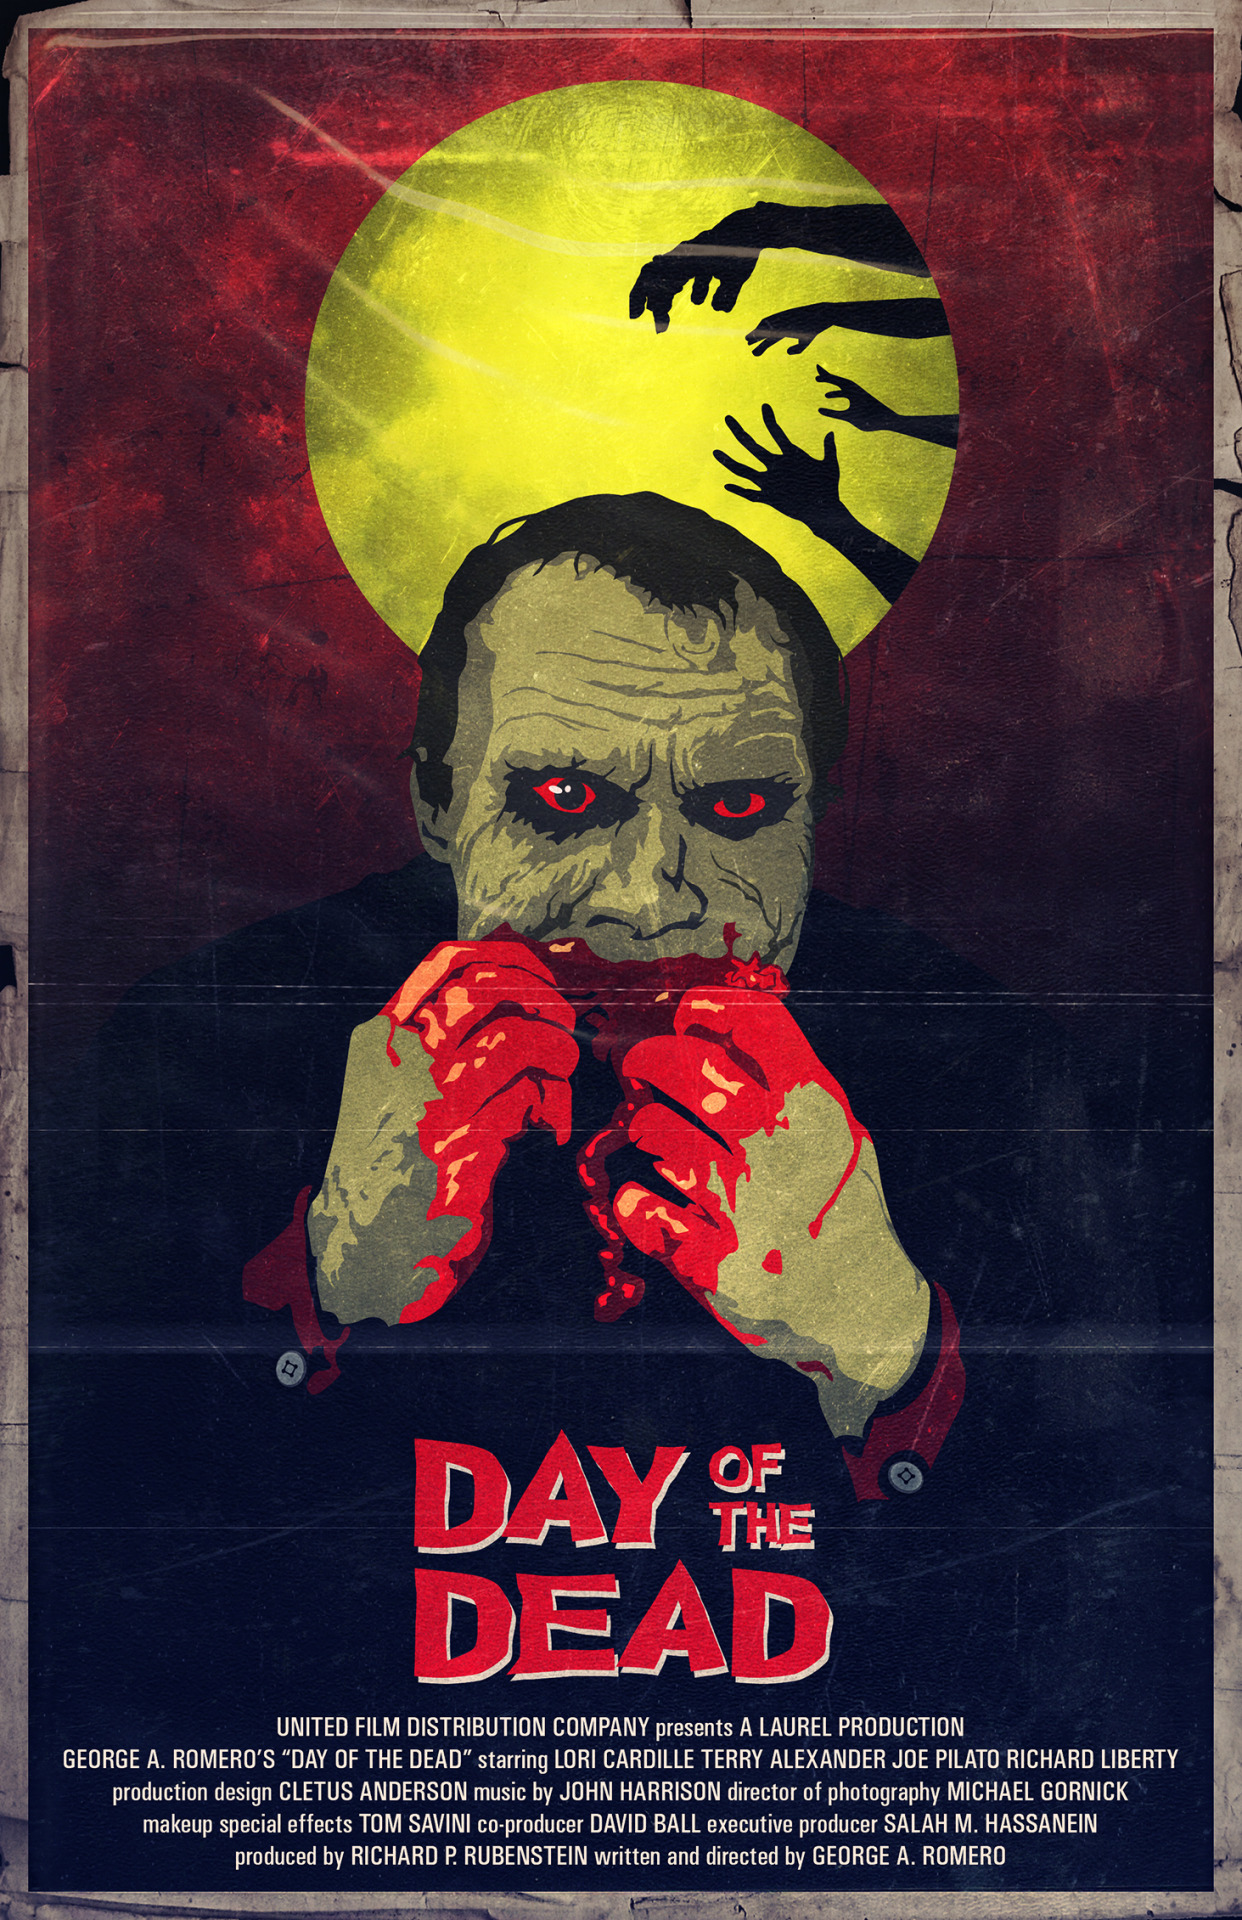 Today is el Día de los Muertos, and every year on this day I watch DAY OF THE DEAD (1985) from George A. Romero.